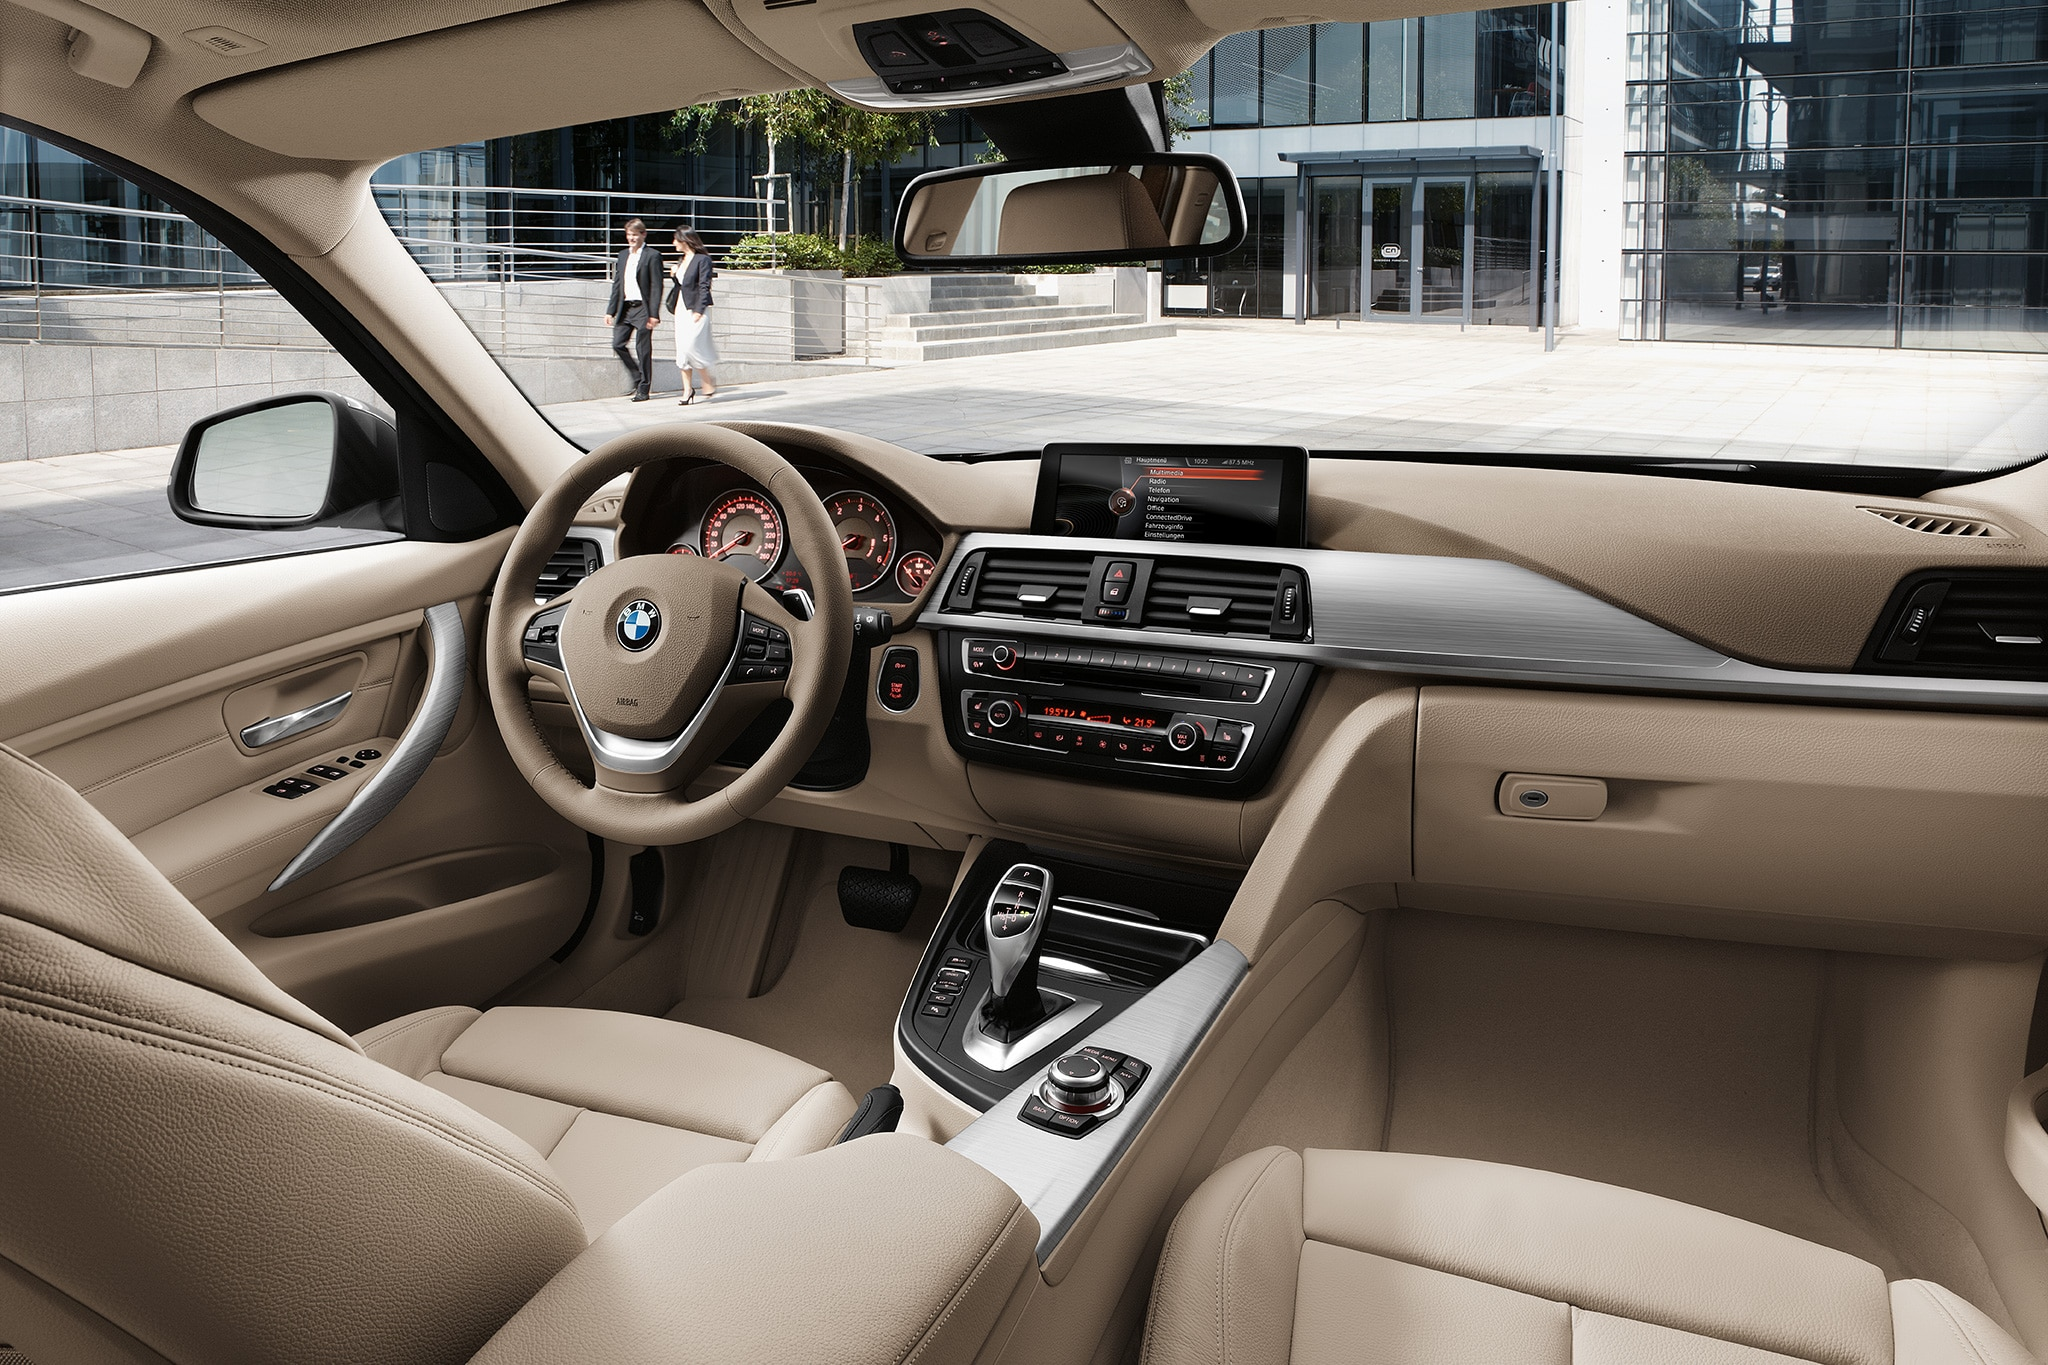 2013 bmw 320i interior male models picture - Show More